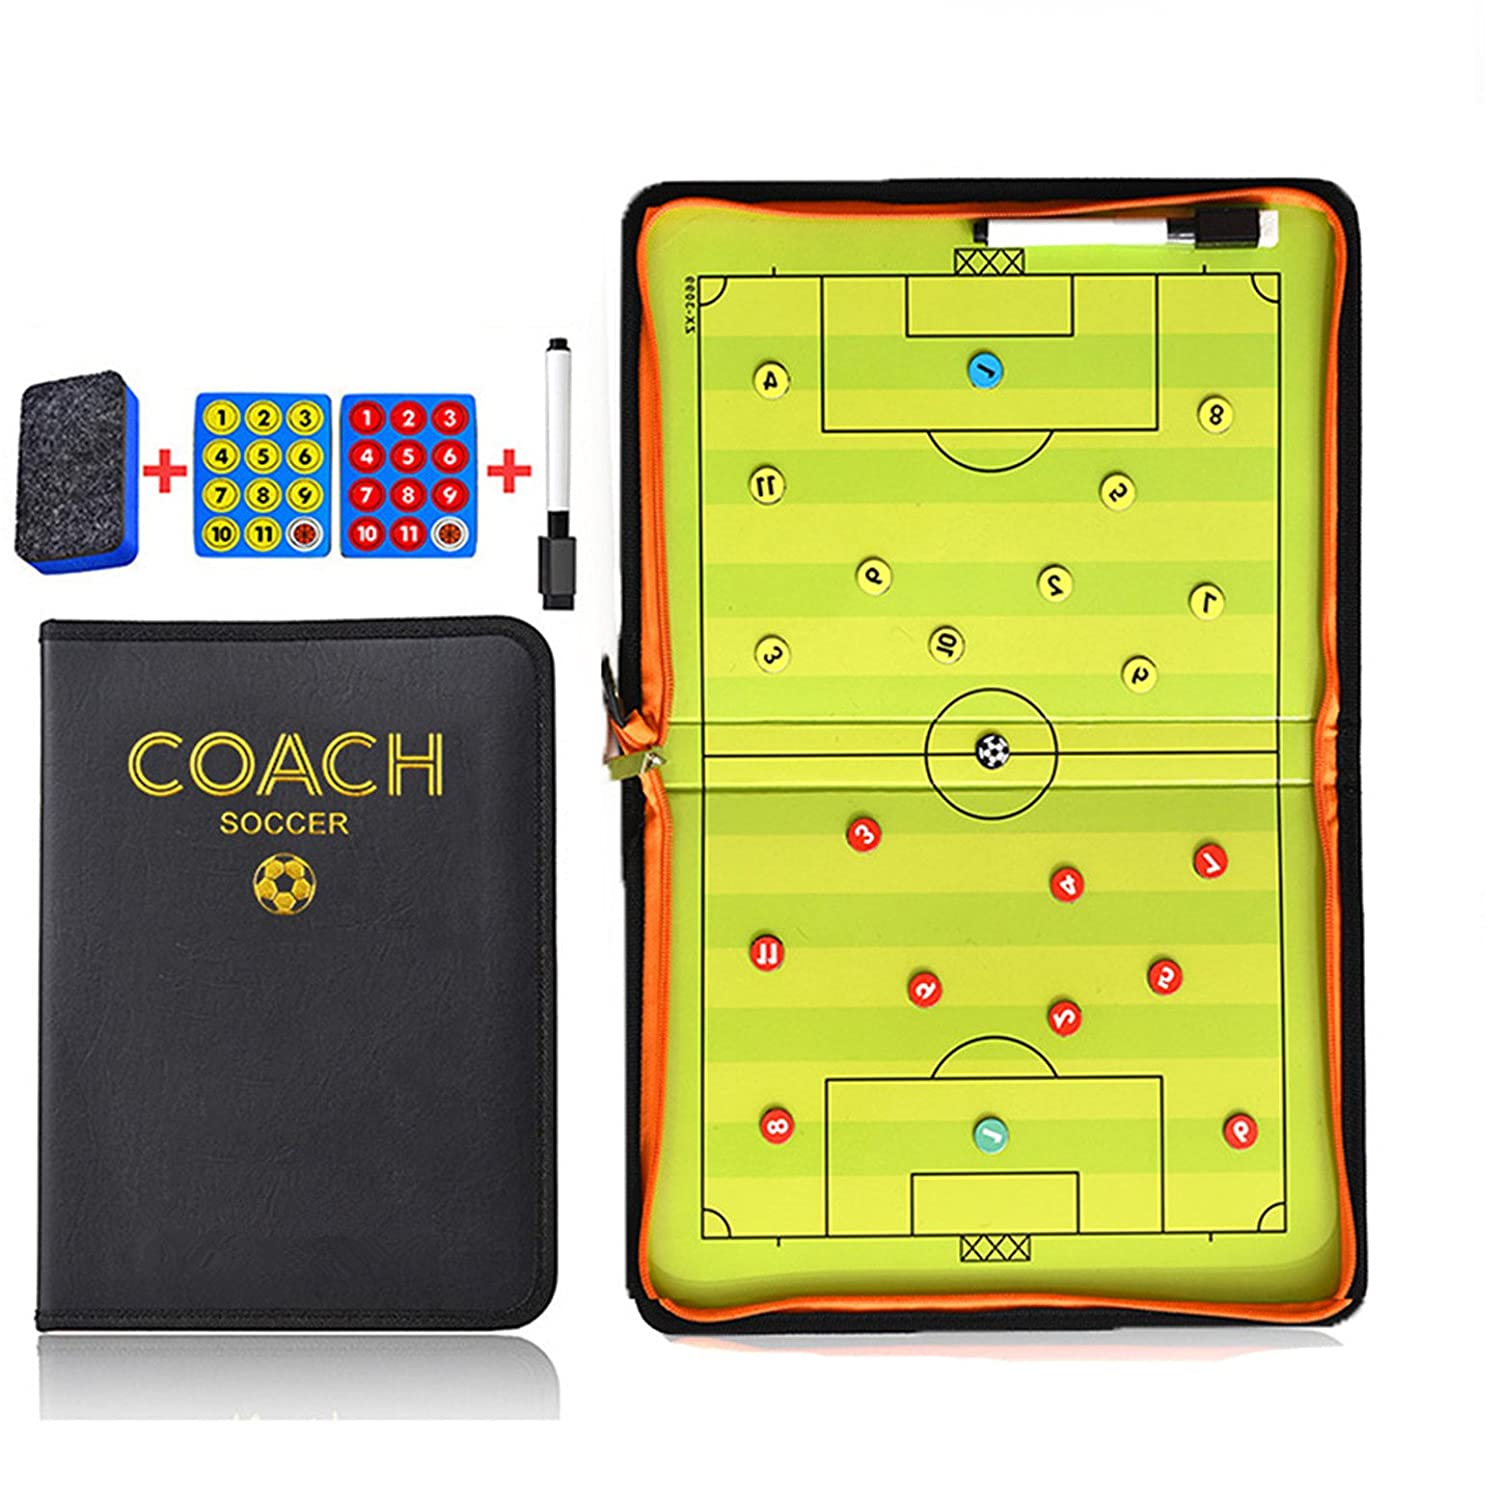 16.54'' x 11.02'' Coaches Tactical Board, RoseFlower Portable Professional Football/Soccer Magnetic Tactics Strategy Clipboard Training Assistant Equipment with Erasable Write-Wipe 2 in 1 Pen and Eraser